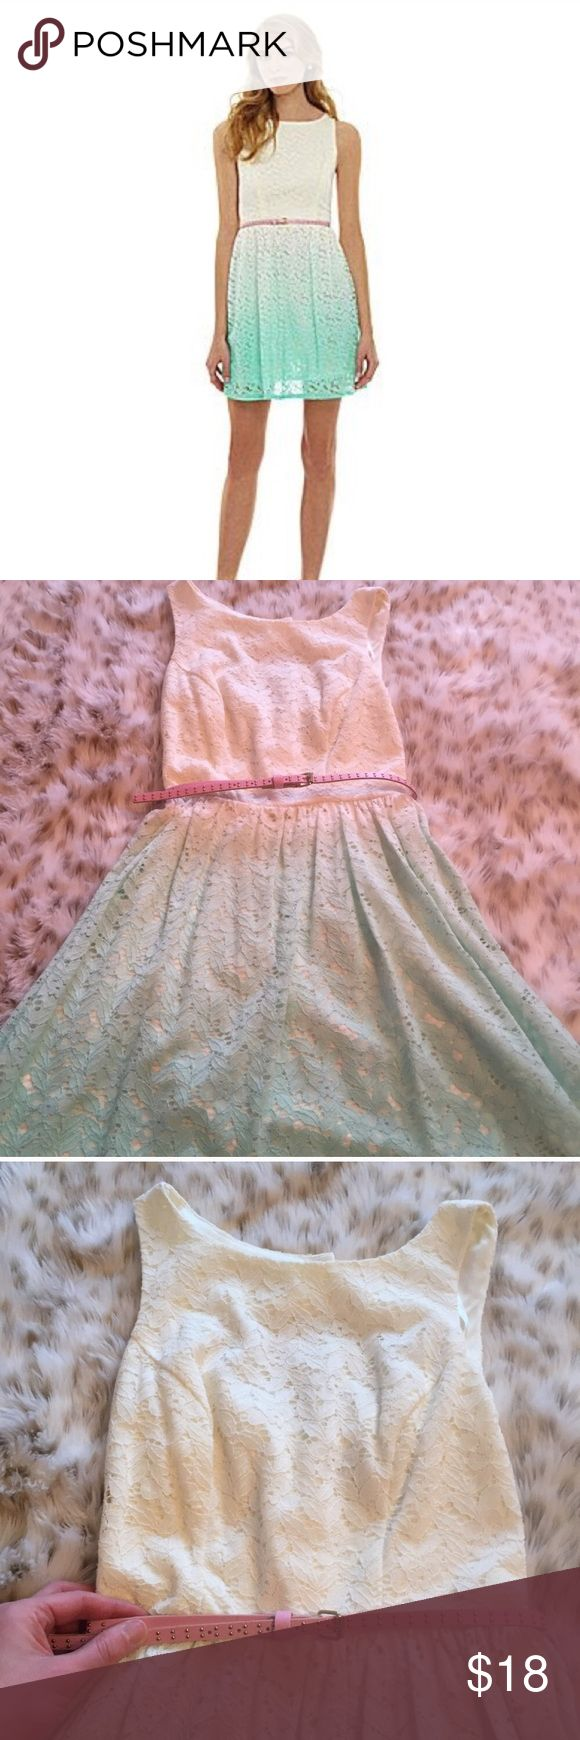 Jodi Kristopher Ombré Lace belted spring dress Jodi Kristopher Ombre lace dress! Size 1. Goes from white to blue! So cute! With a pink gold studded belt. Cut out area on upper back! So cute!  Perfect for Easter or this coming spring and summer. Jodi Kristopher Dresses Mini